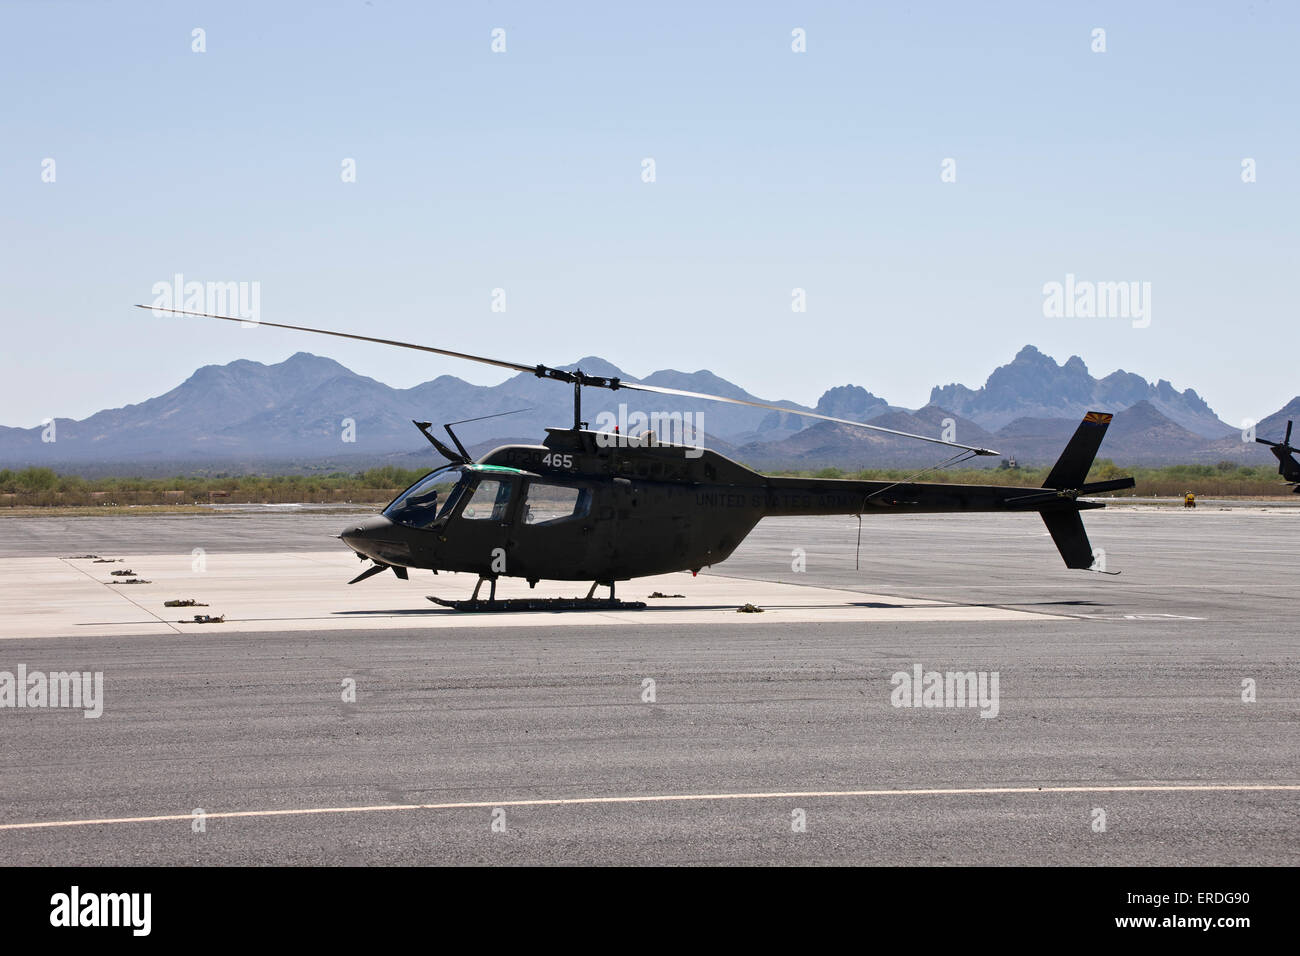 An OH-58 Kiowa helicopter of the U.S. Army on the tarmac at Pinal Airpark, Arizona. - Stock Image